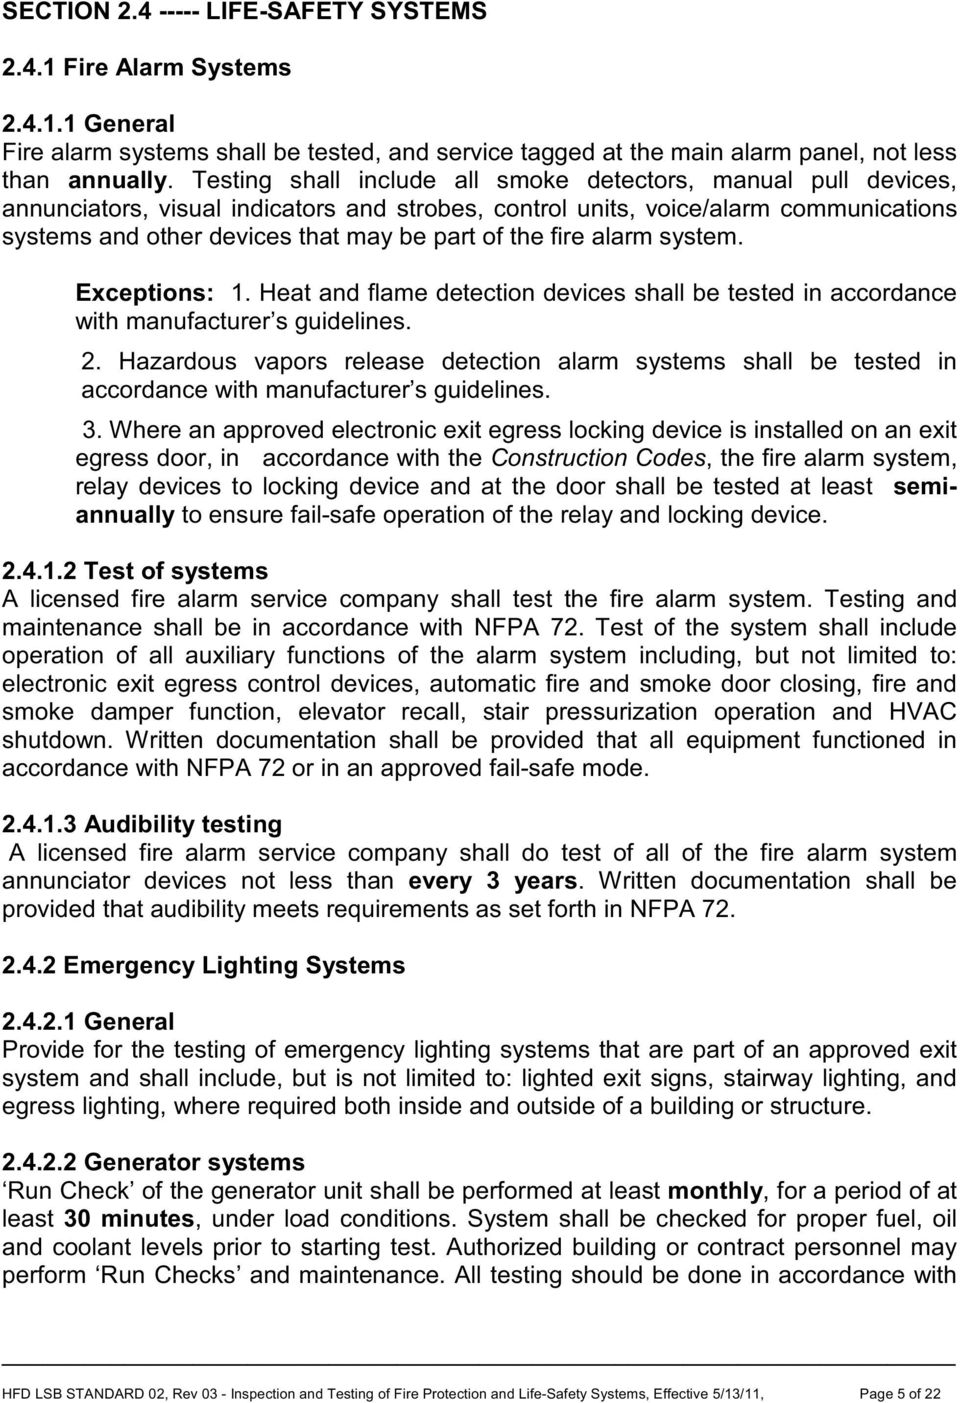 the fire alarm system. Exceptions: 1. Heat and flame detection devices shall be tested in accordance with manufacturer s guidelines. 2.